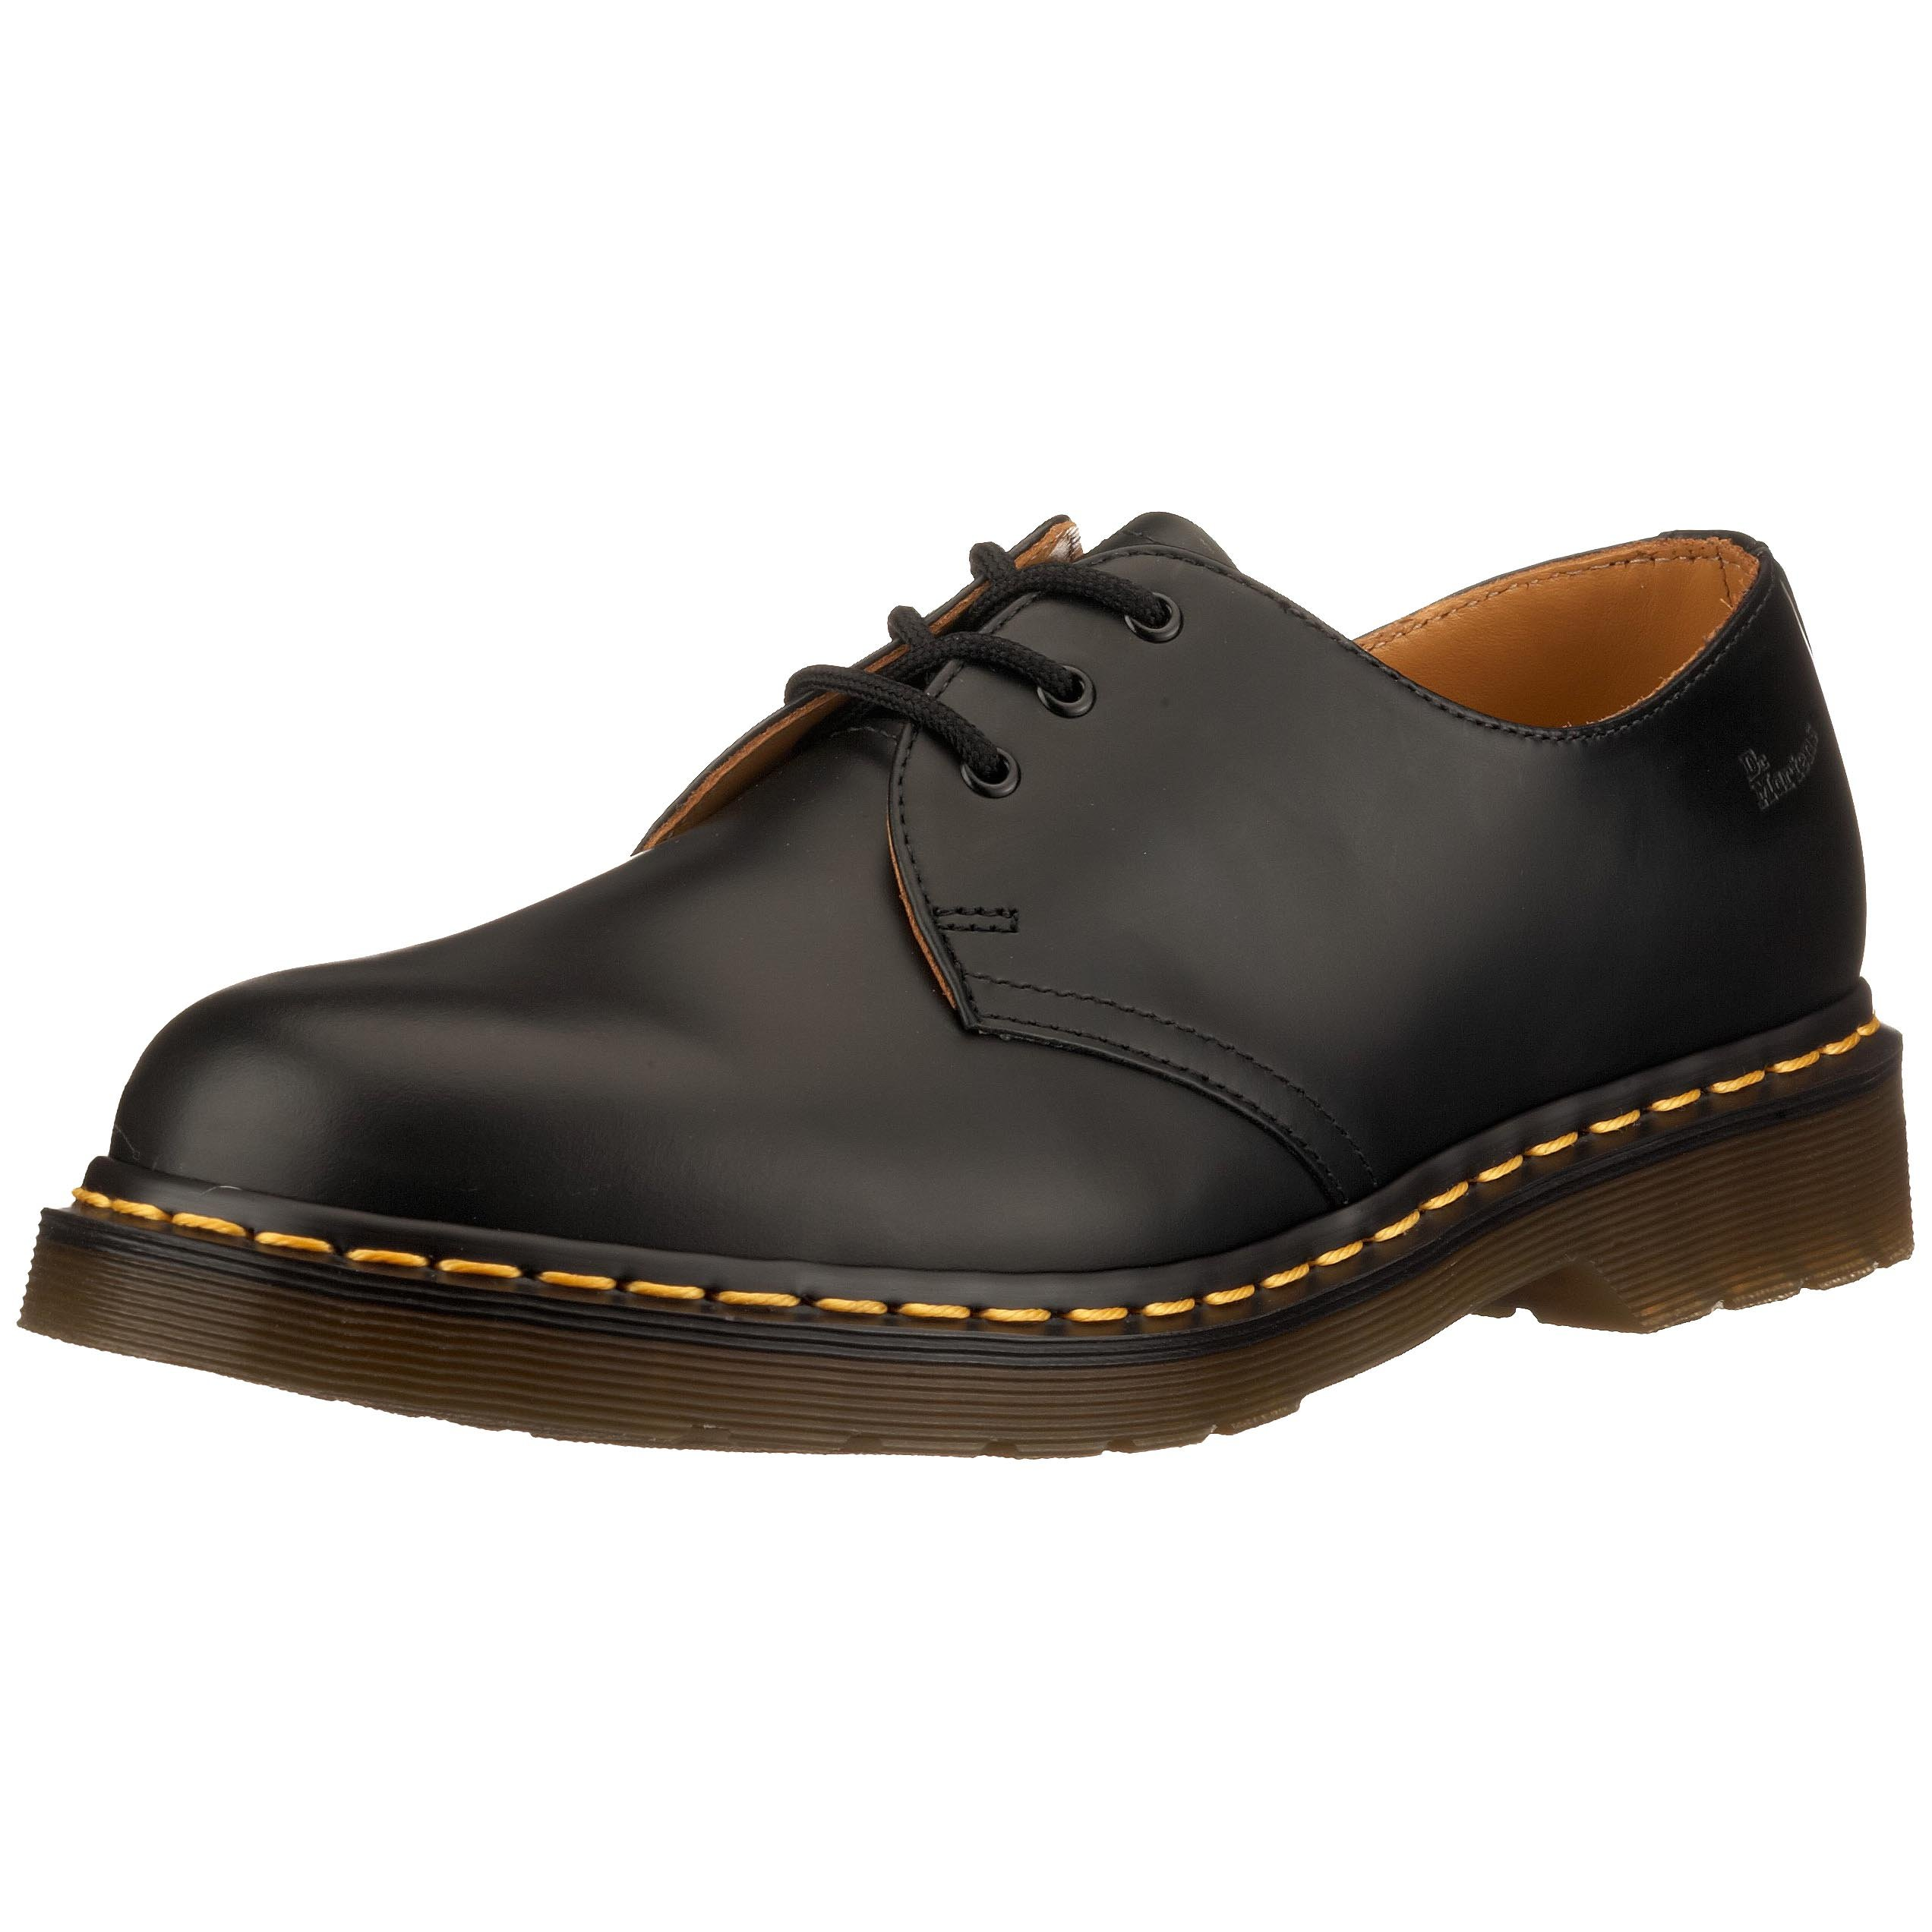 Dr. Martens Women's 1461 Lace Up,Black,7 UK (US Women's 9 M)